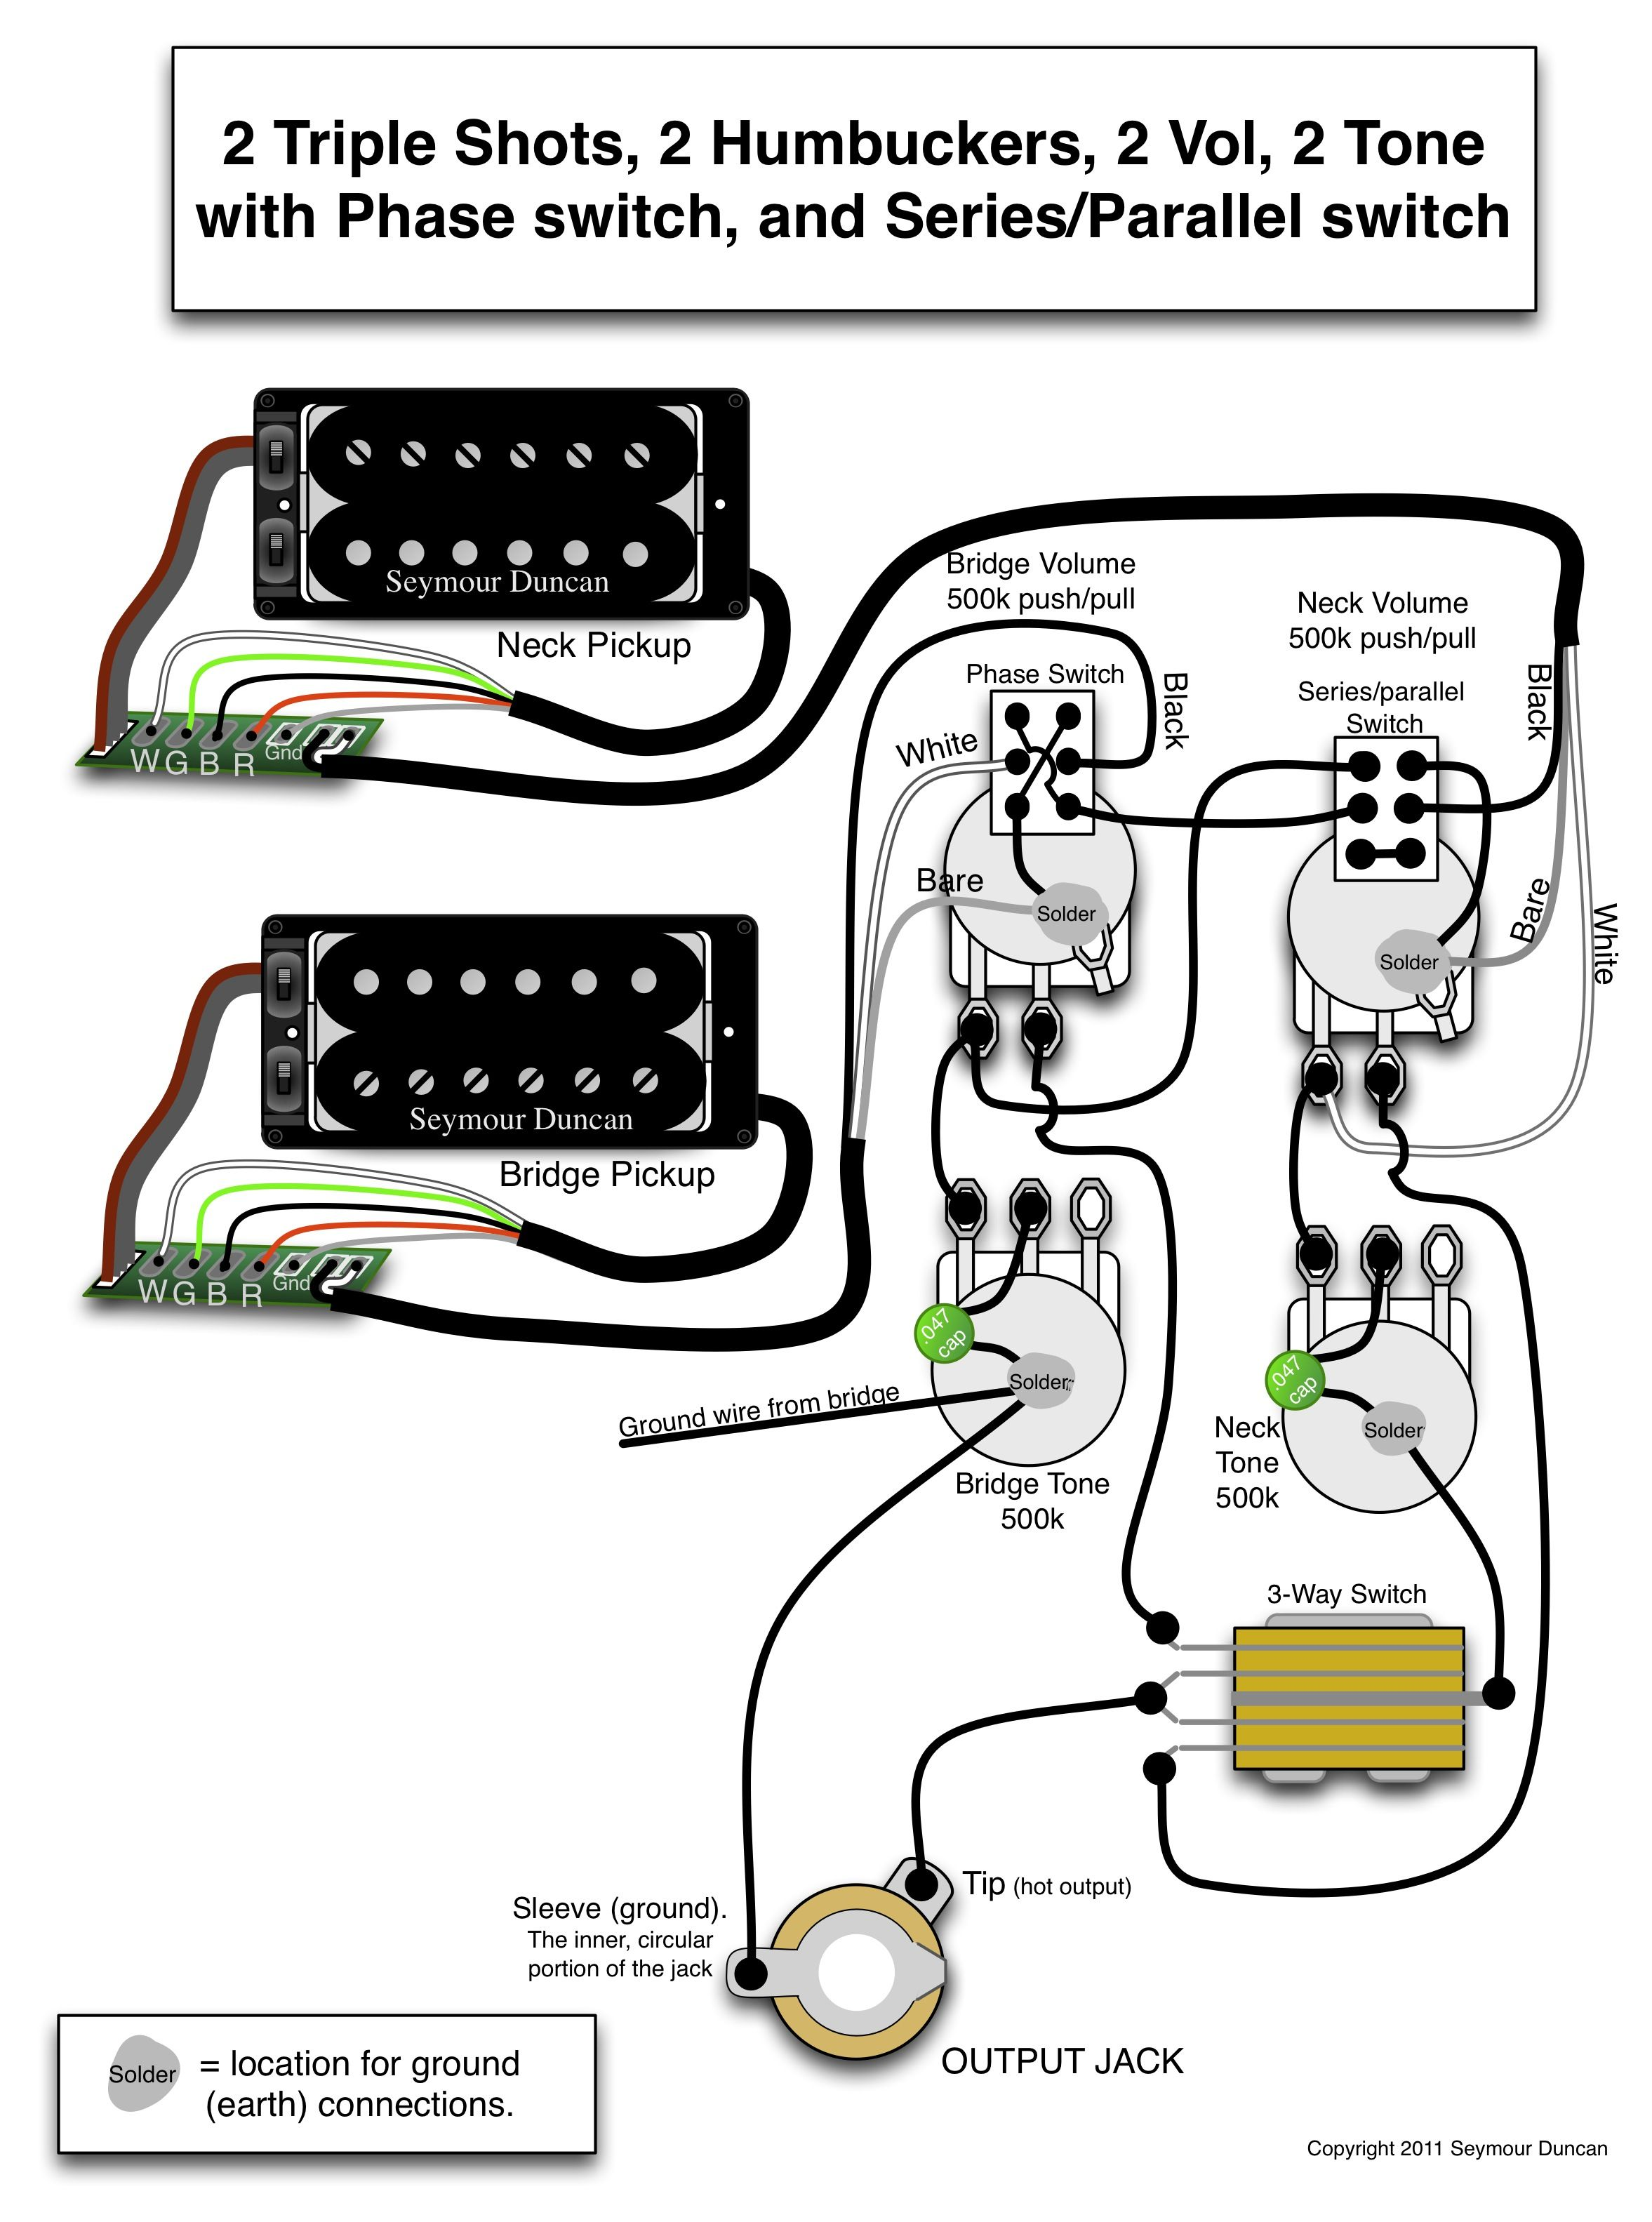 seymour duncan wiring diagram 2 triple shots 2 humbuckers 2 vol 2 tone one with phase switch and the other with series parallel switch  [ 2354 x 3166 Pixel ]